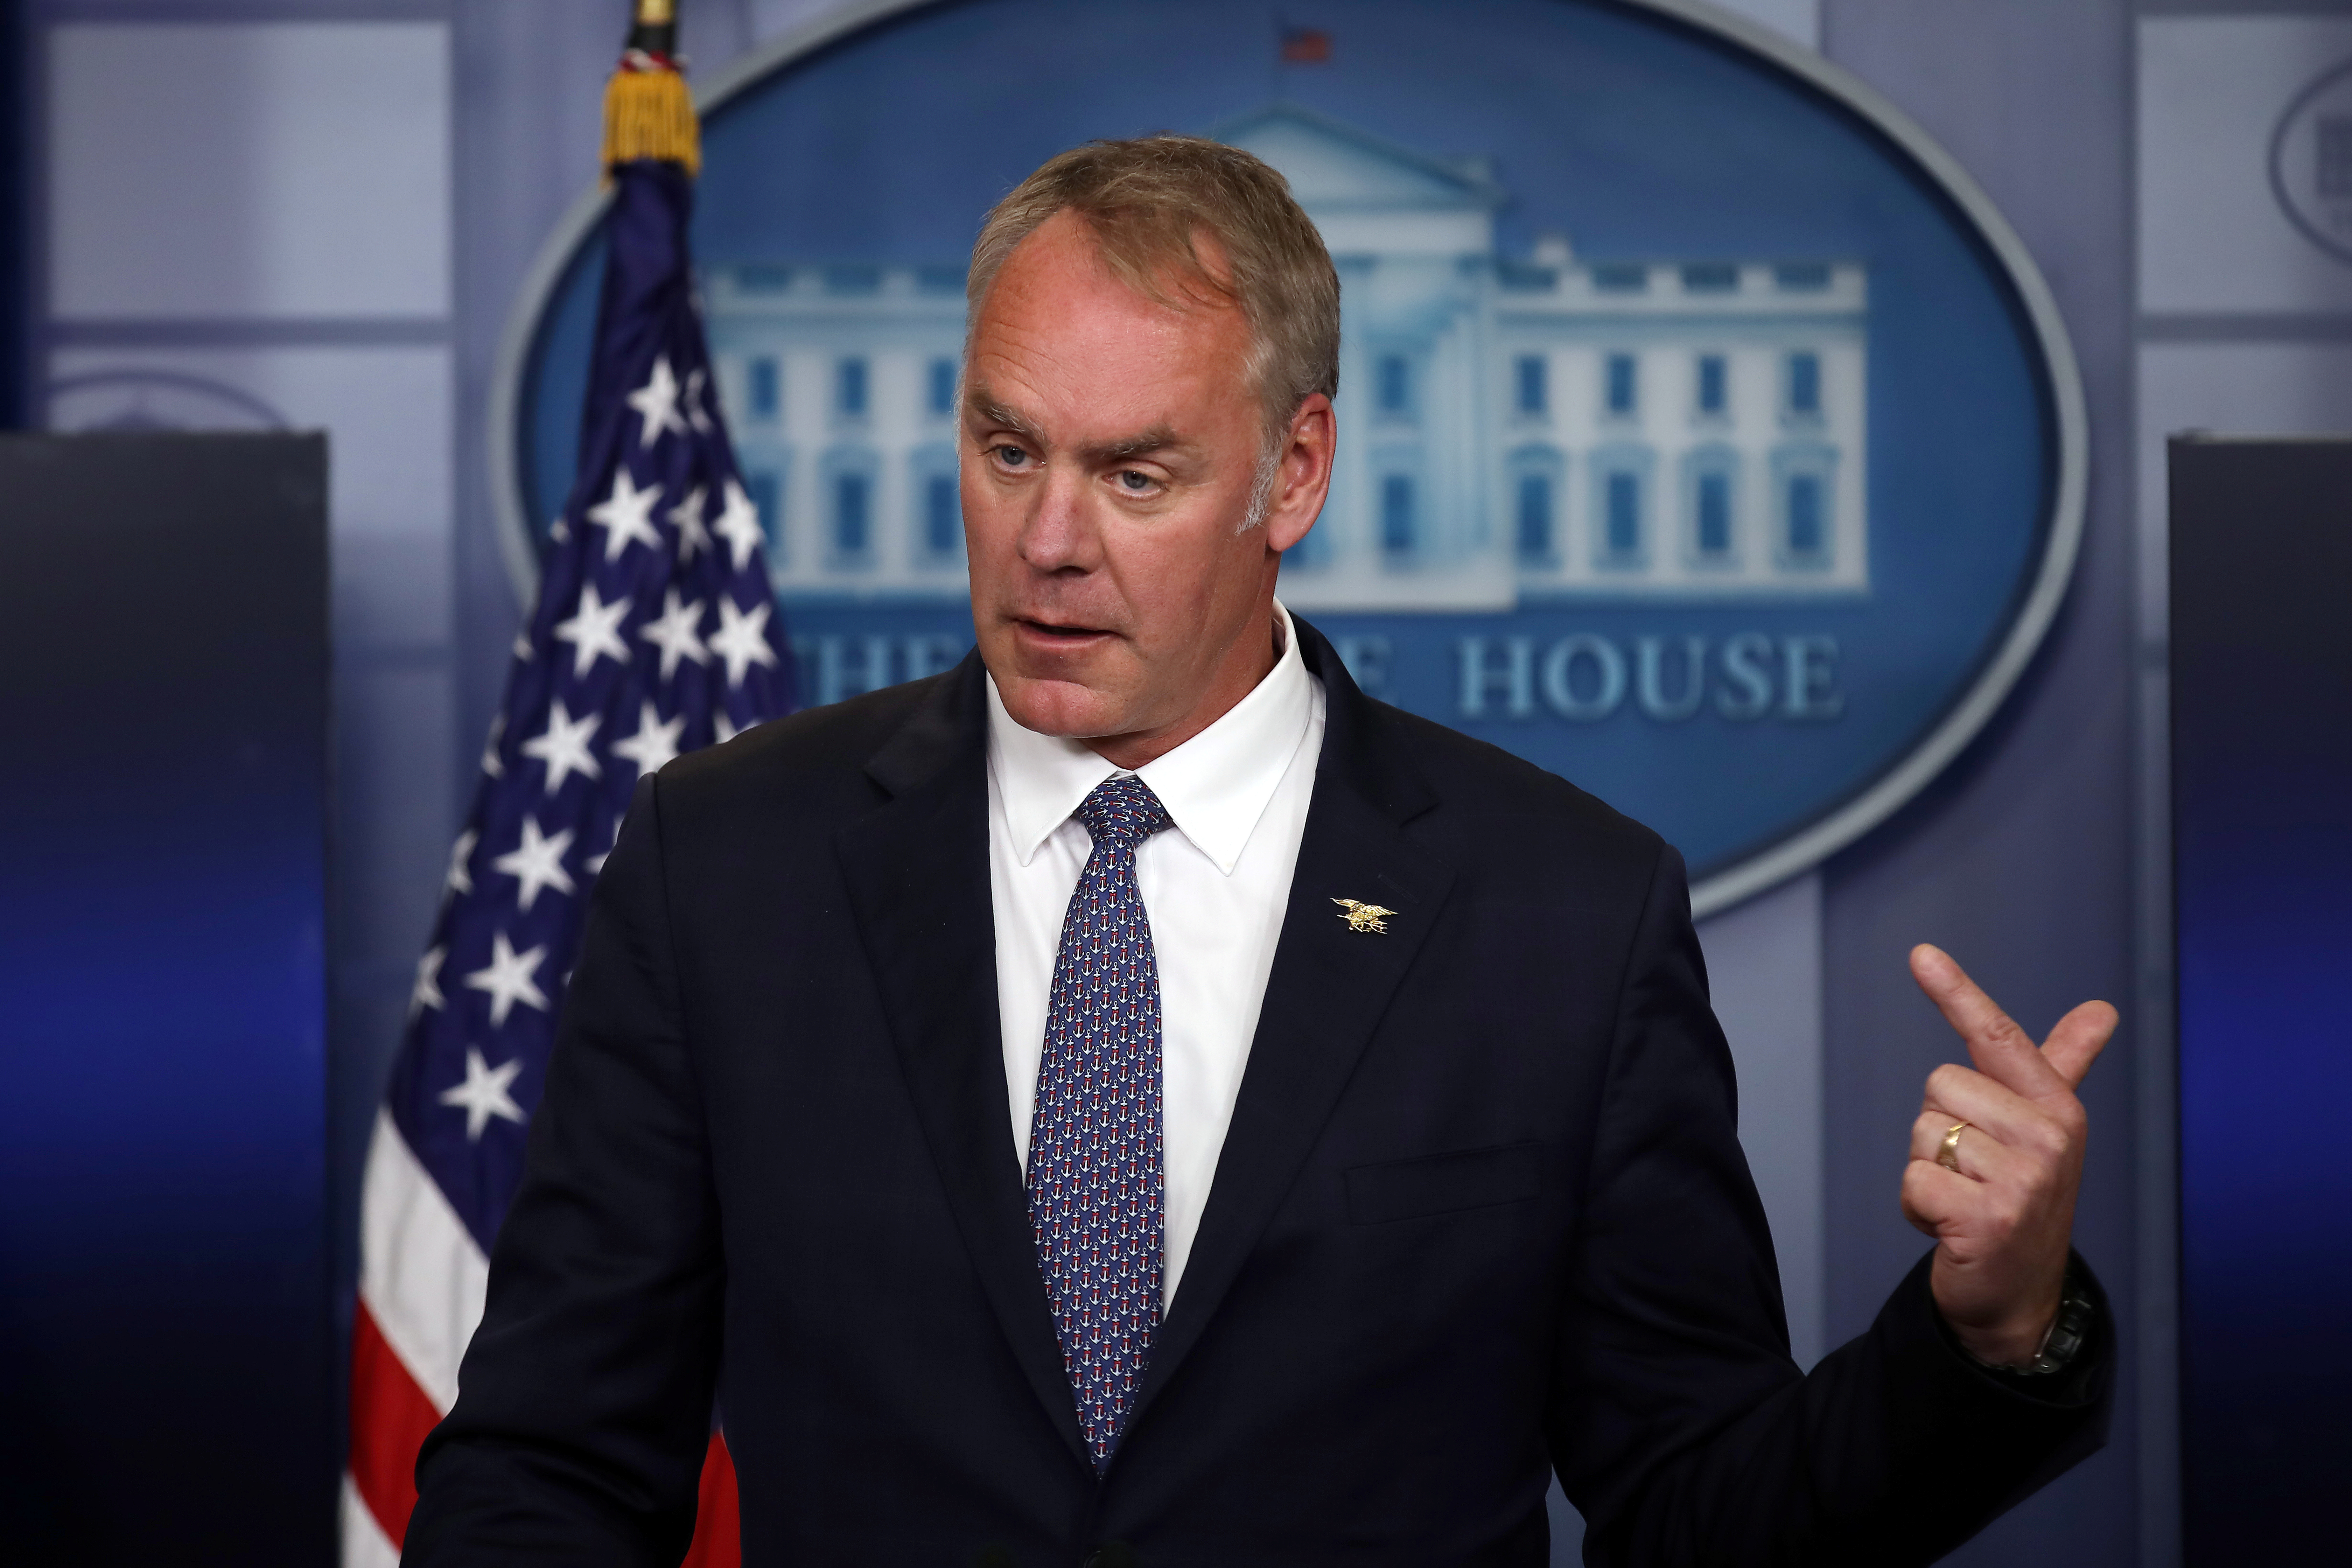 Secretary of the Interior Ryan Zinke speaks during a daily press briefing at the White House in Washington, U.S.